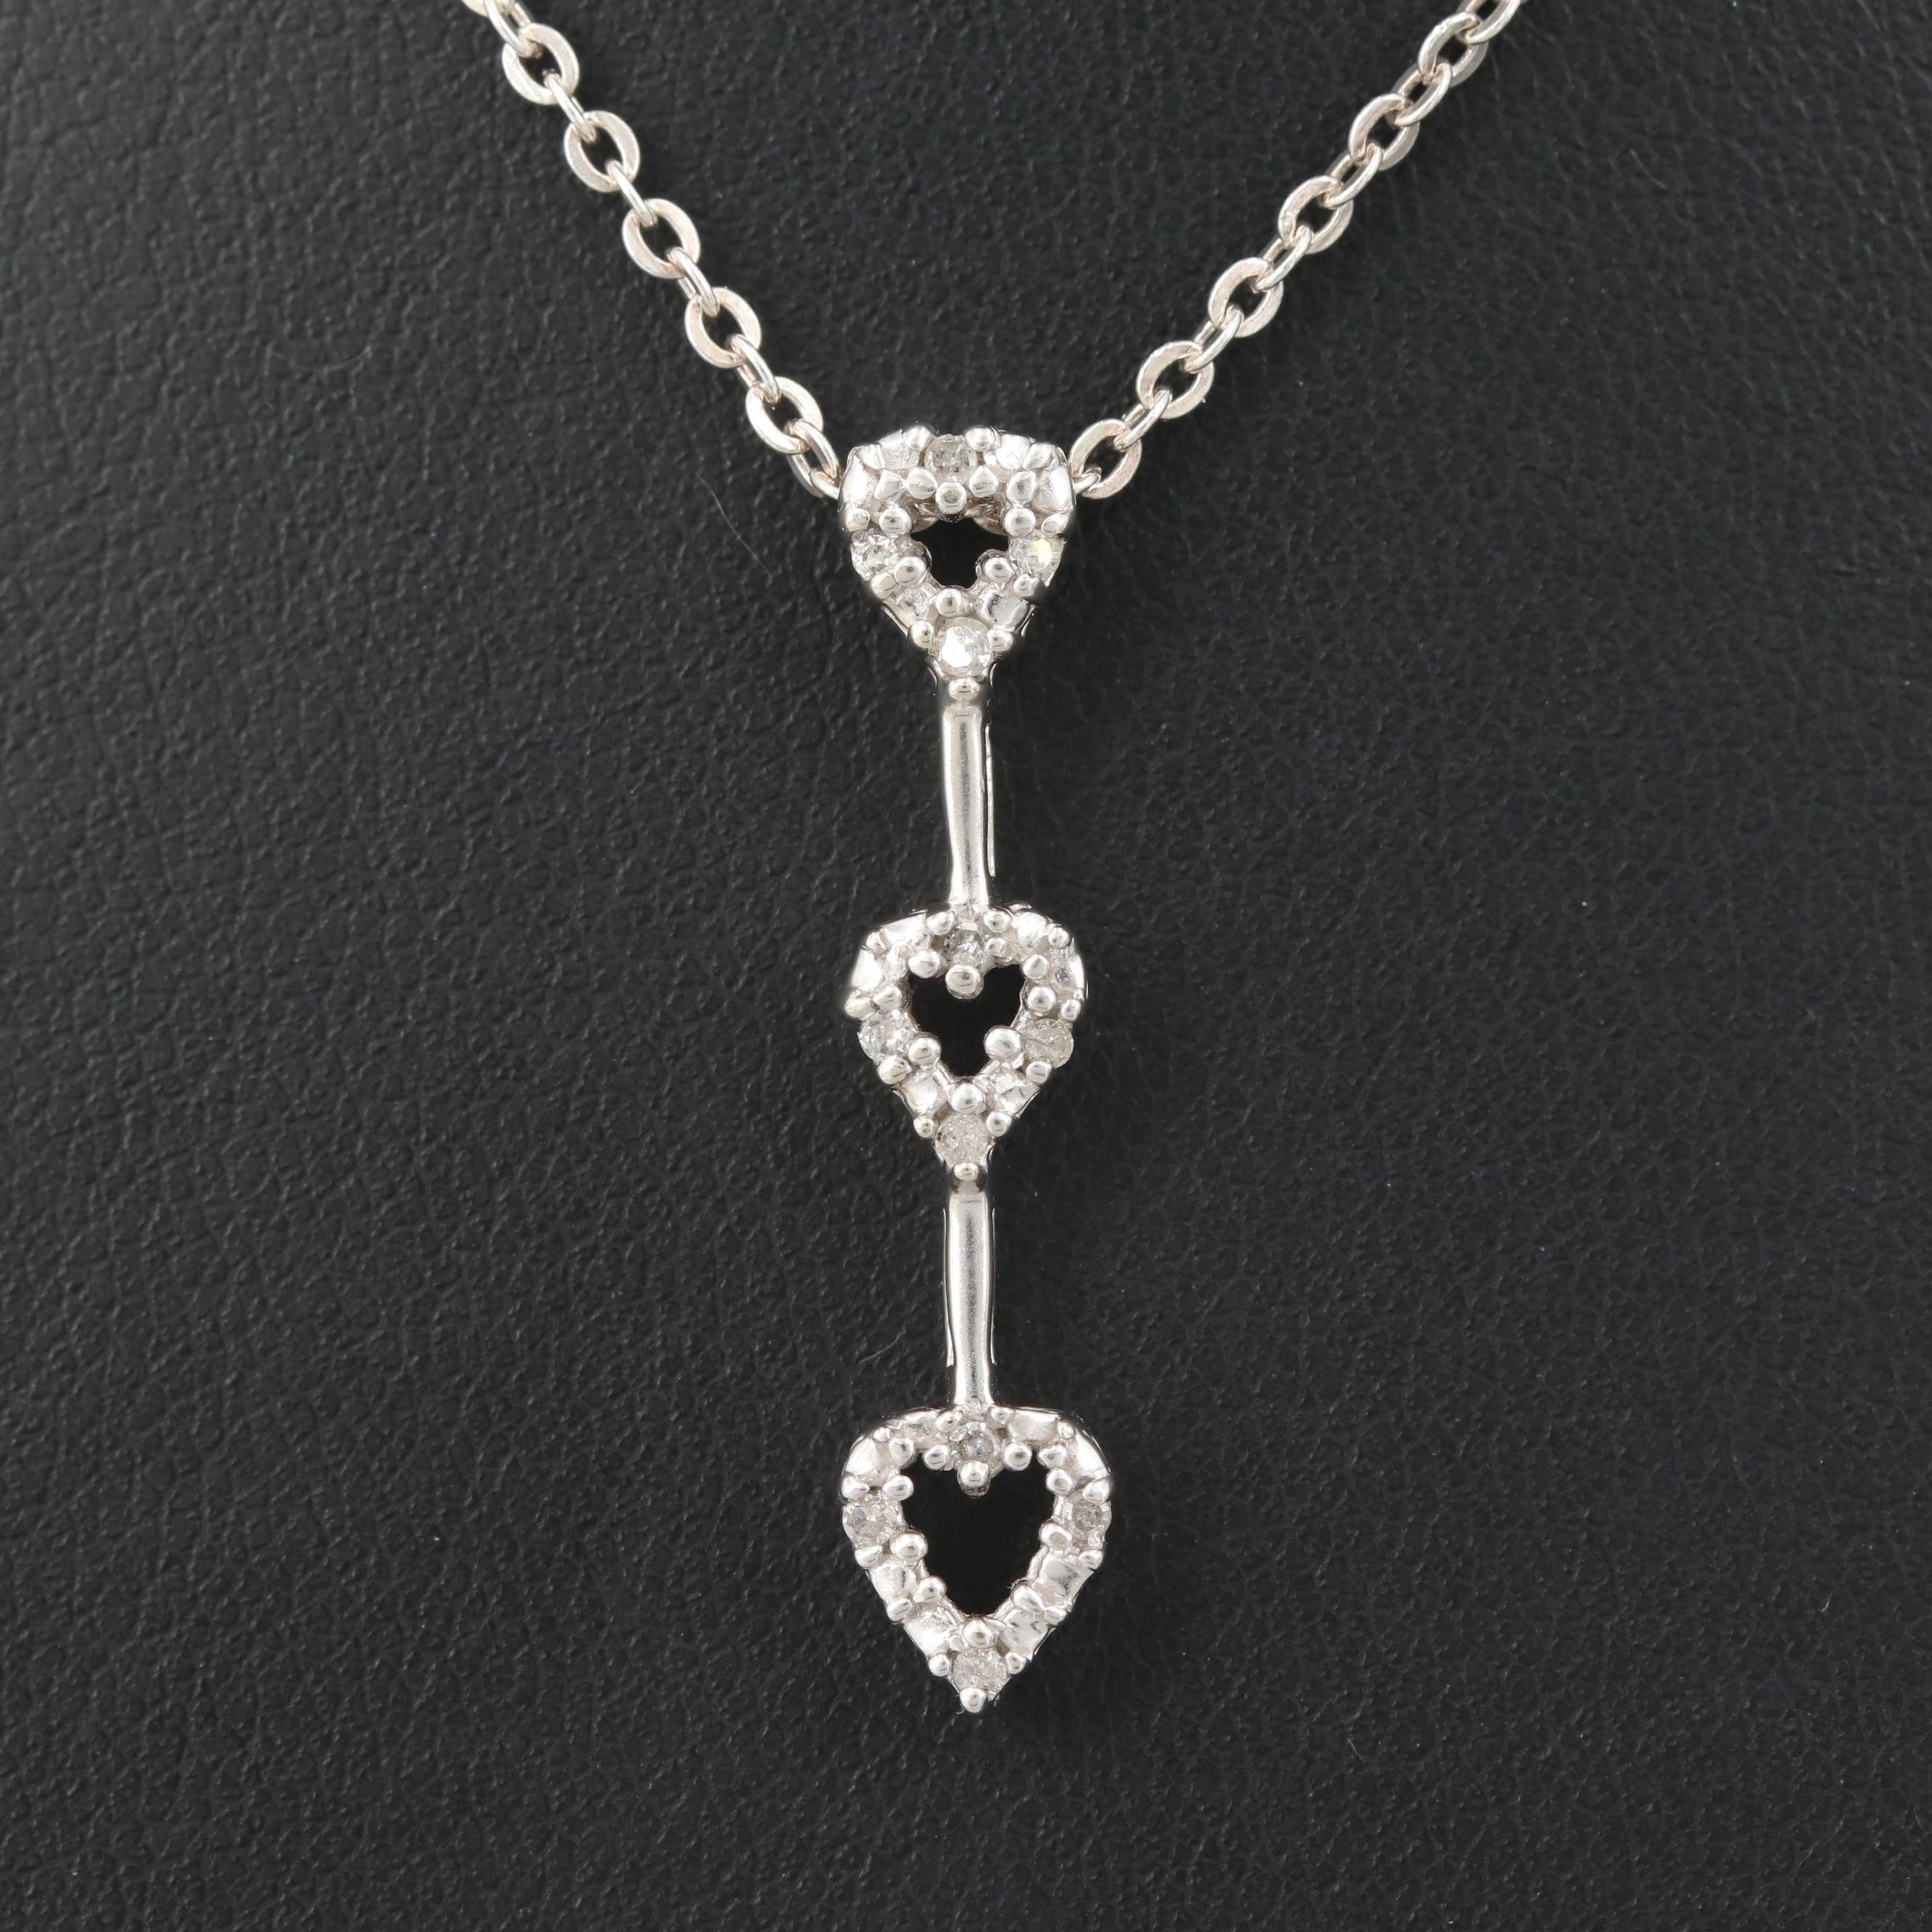 10K White Gold and Sterling Silver Diamond Triple Heart Necklace